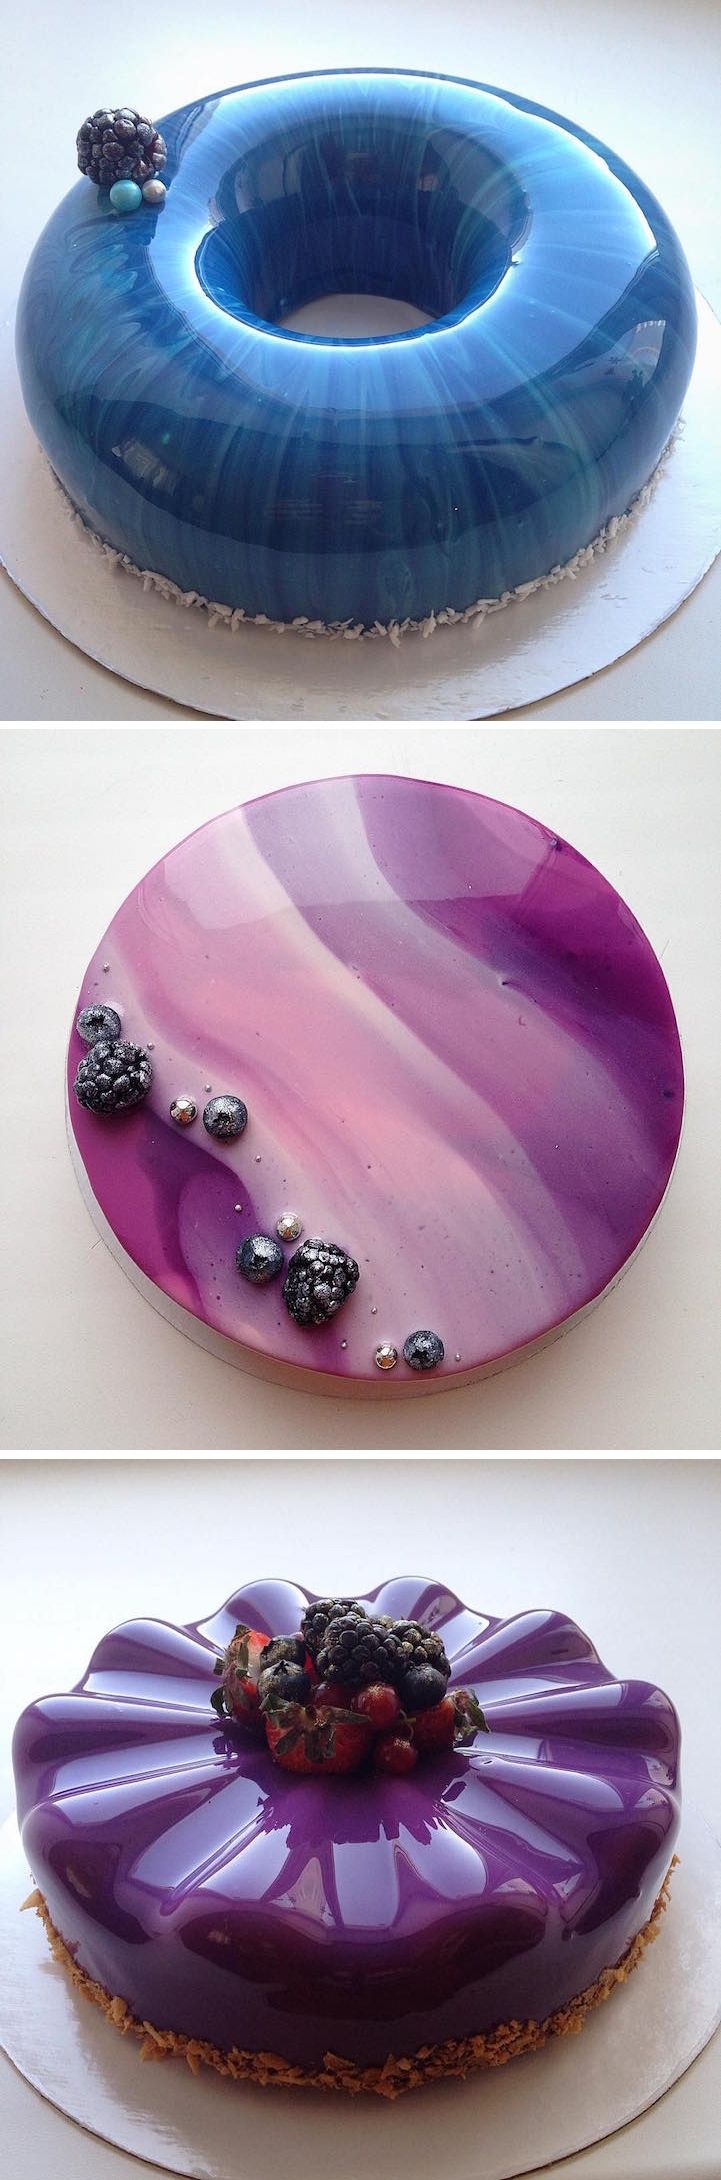 Mesmerizing Cakes With a Mirrored Glaze Resemble Pieces of Polished Marble